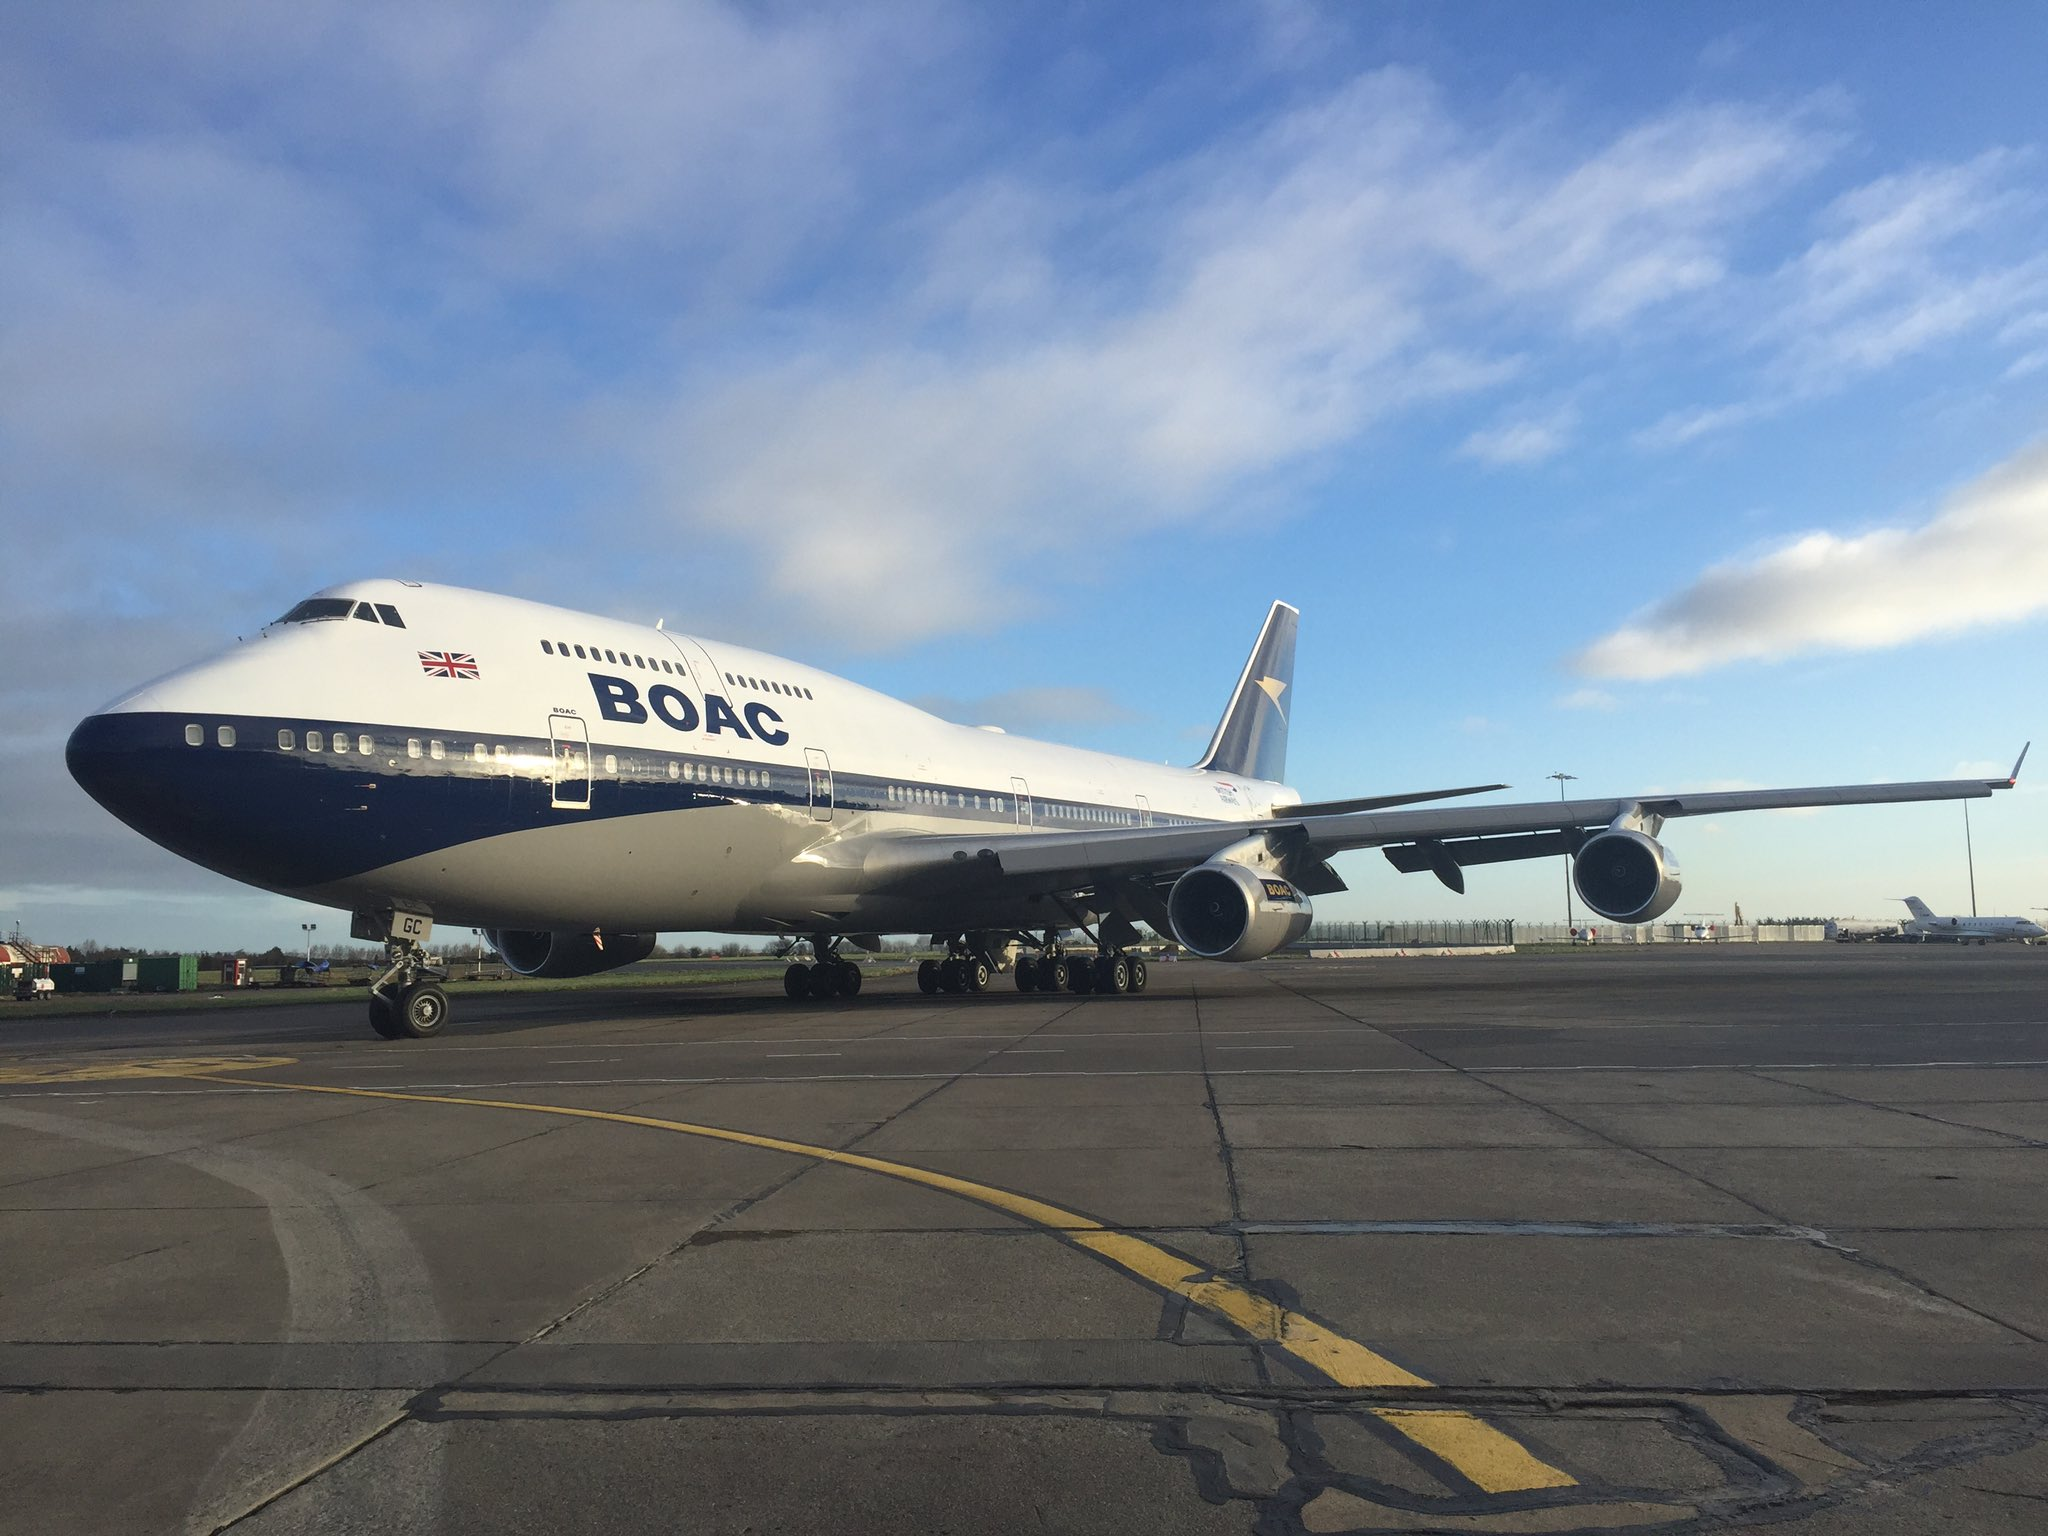 British Airways Reveals the classic BOAC livery on its Boeing 747